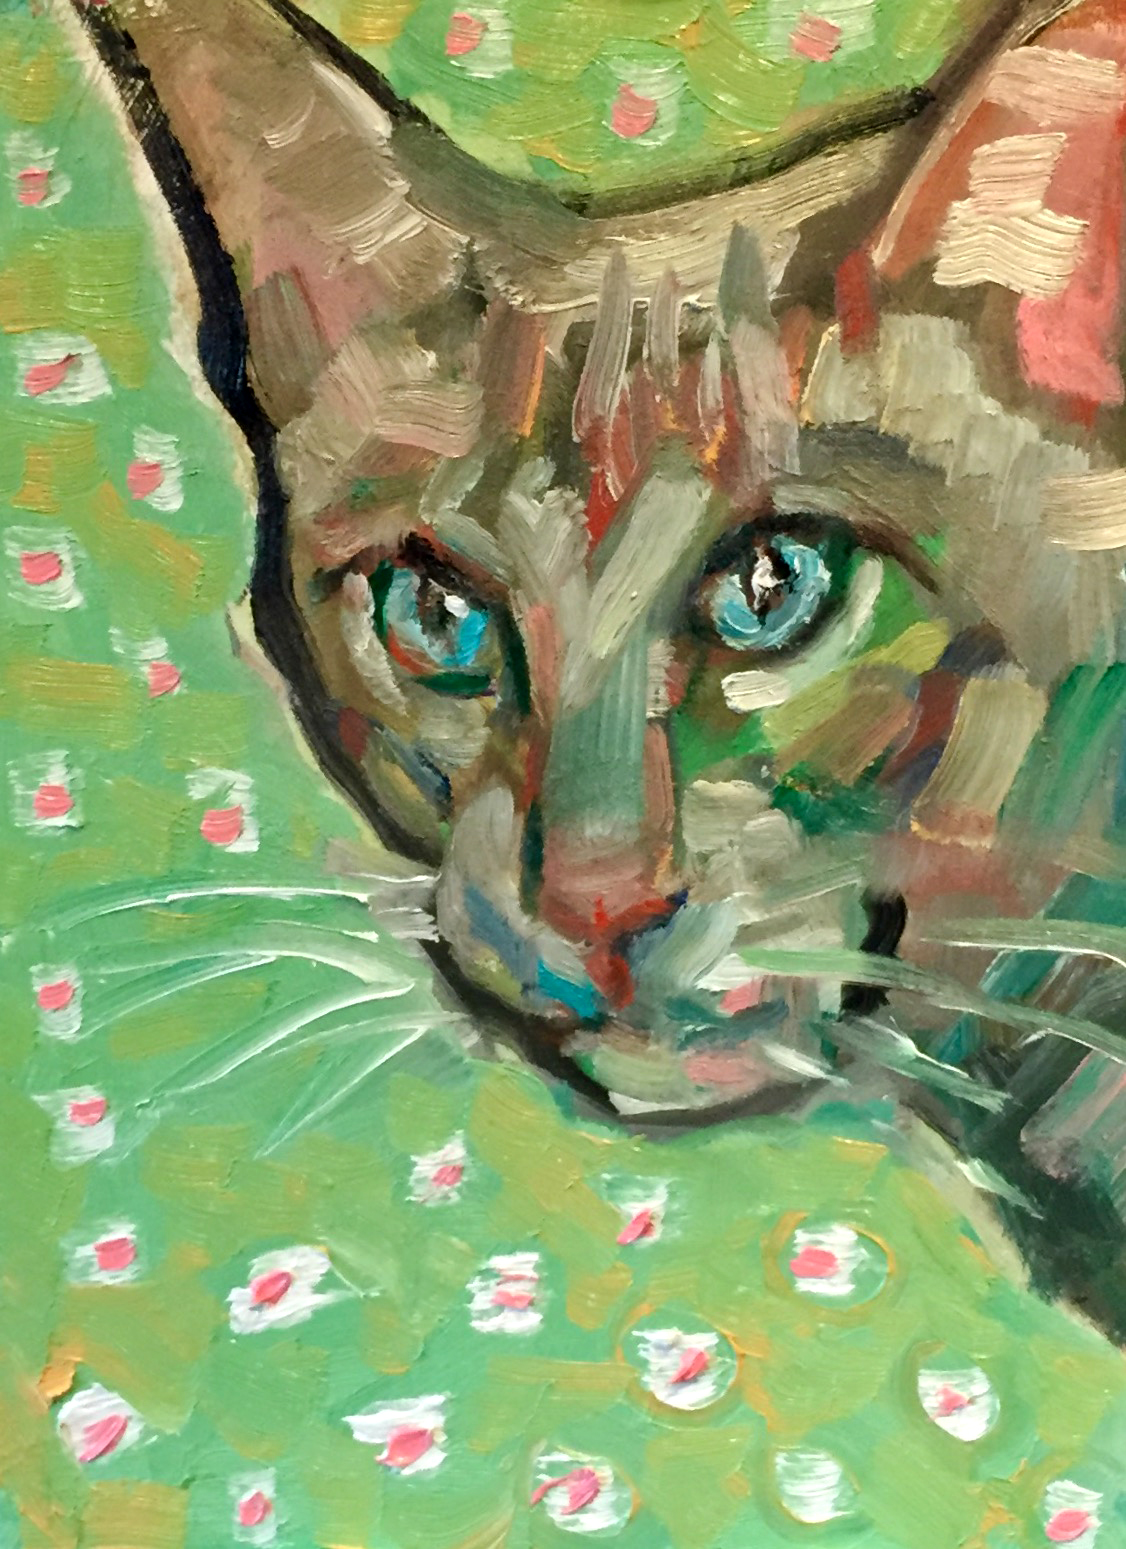 painting cats helps me with painting painting can be very difficult and it can be fun painting for fun and might seem lackadaisical